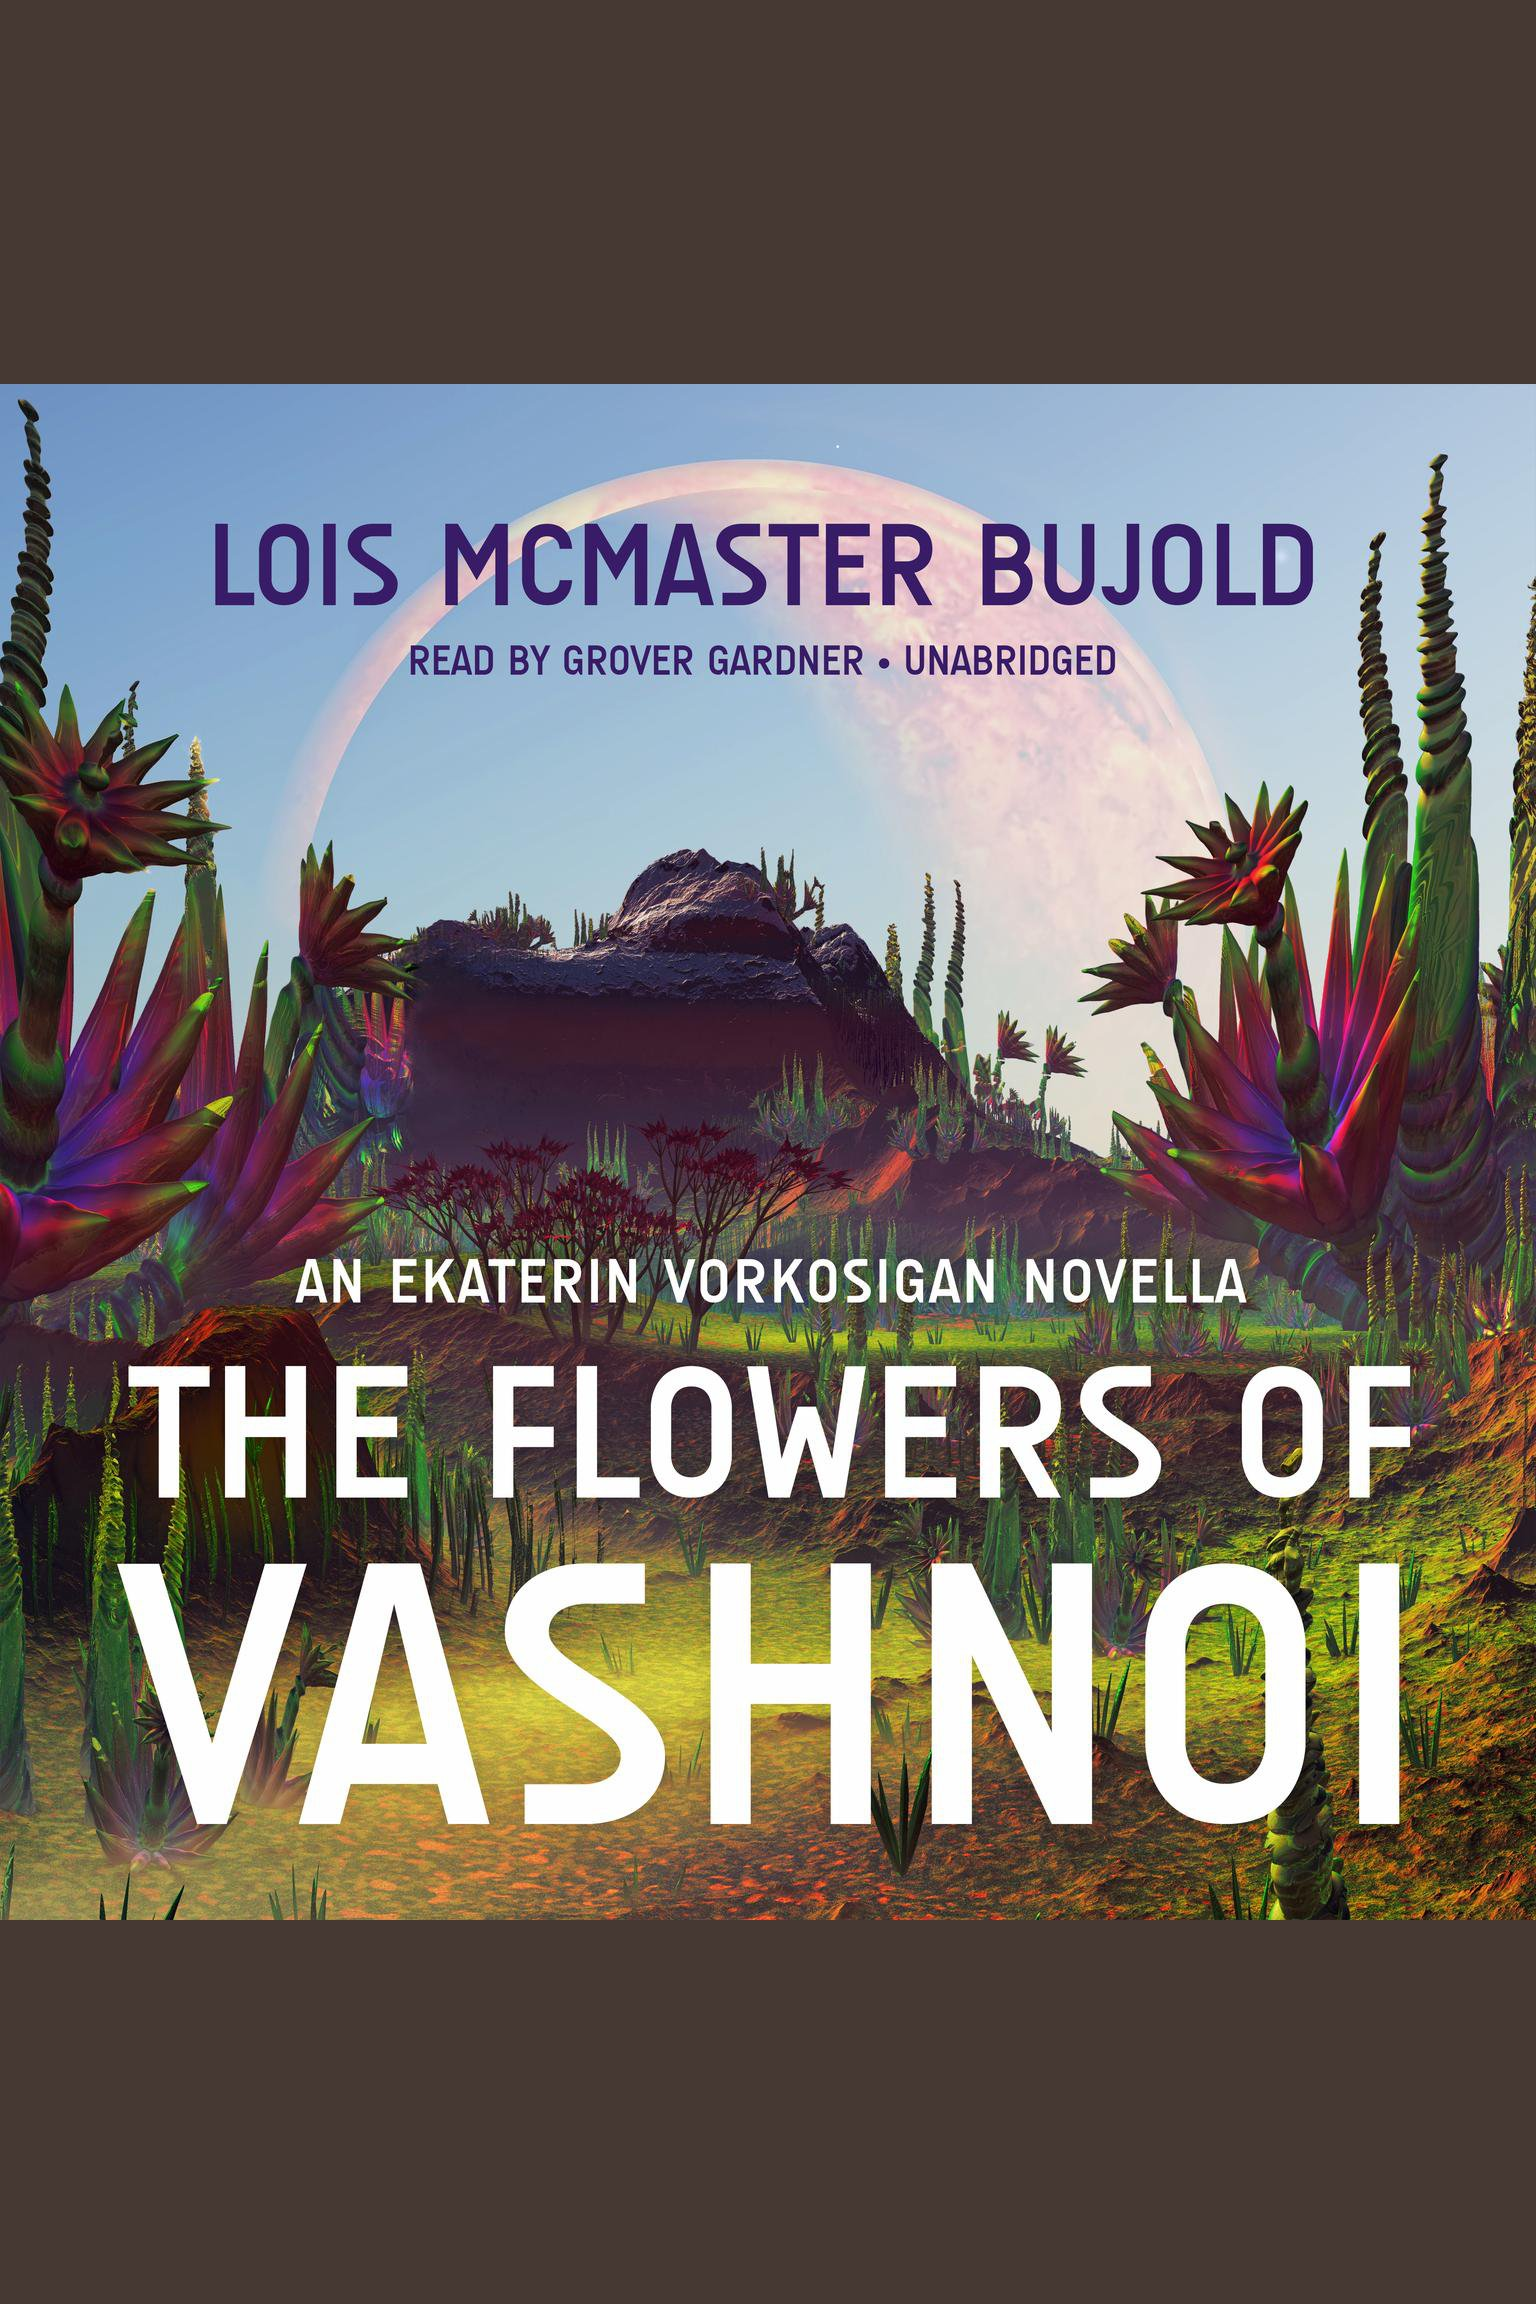 The Flowers of Vashnoi cover image